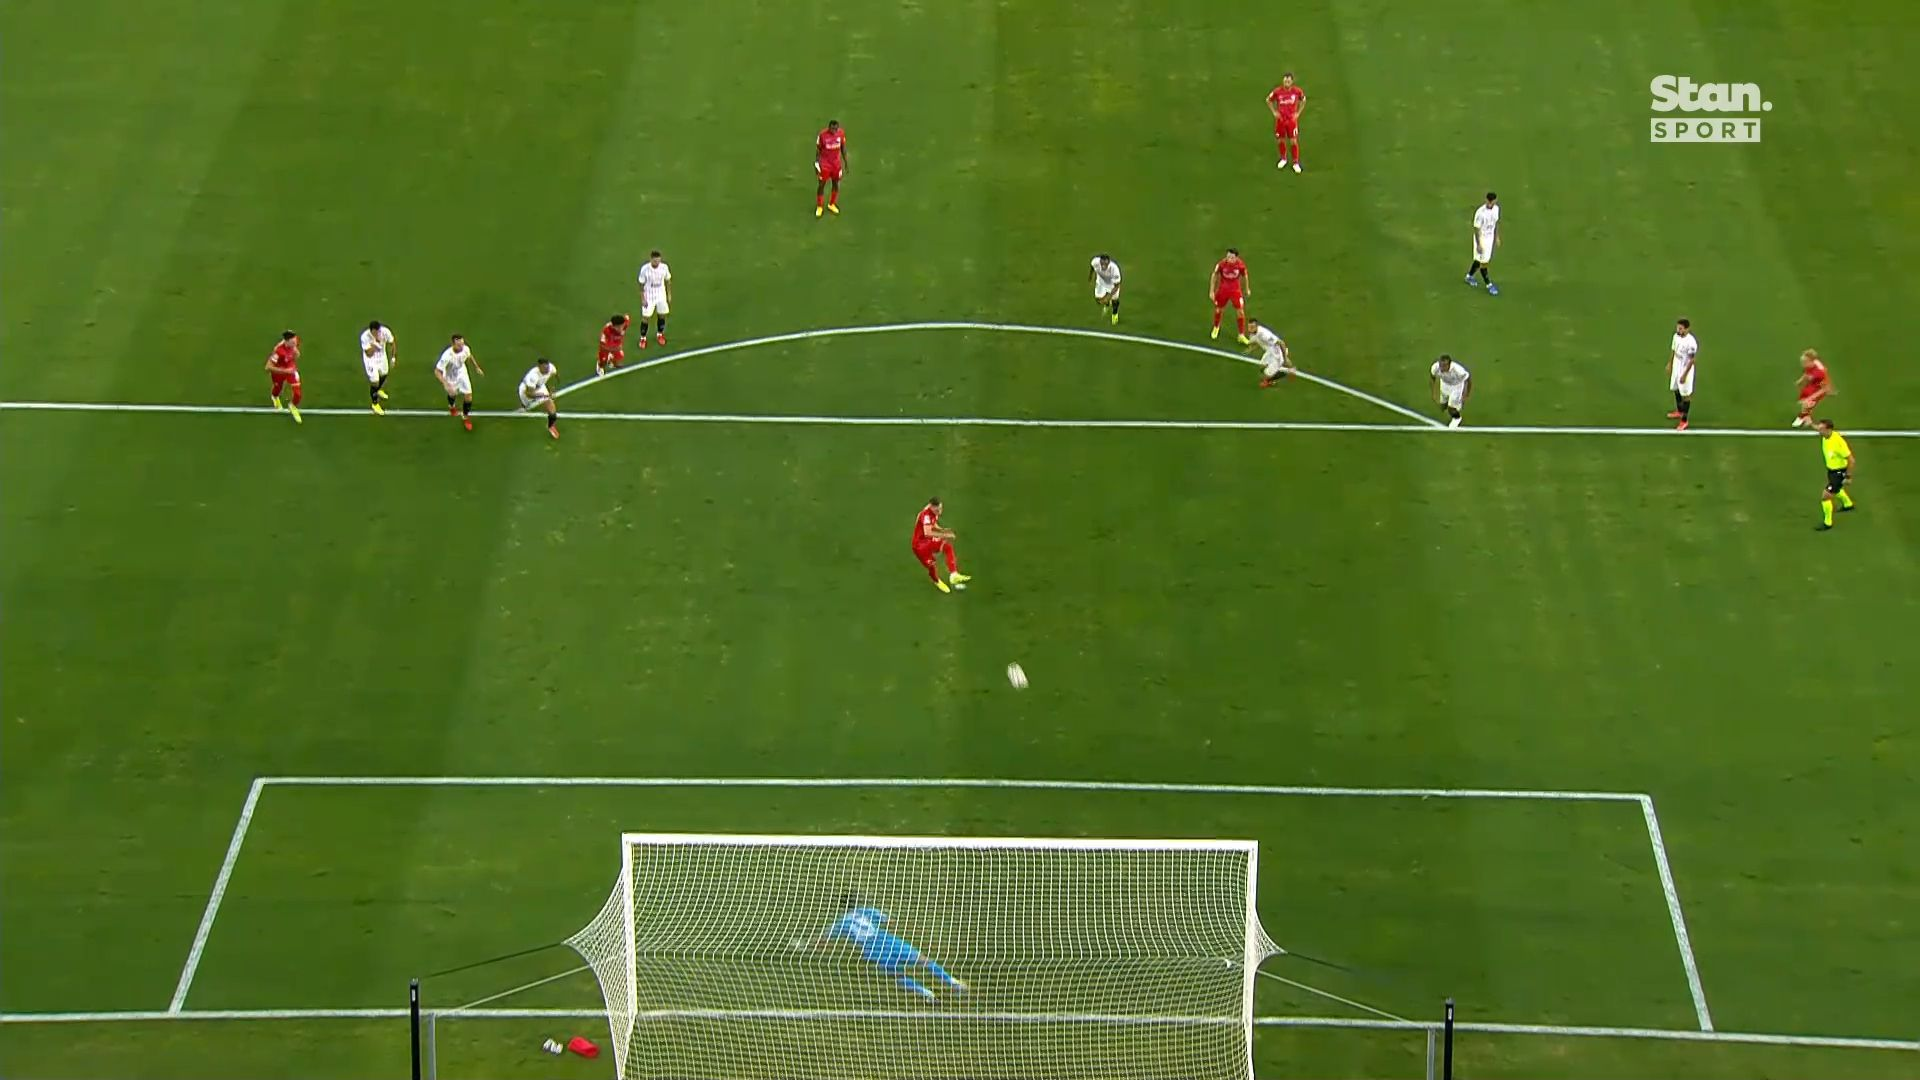 10-man Sevilla salvages 1-1 draw with Salzburg in Champions League opener